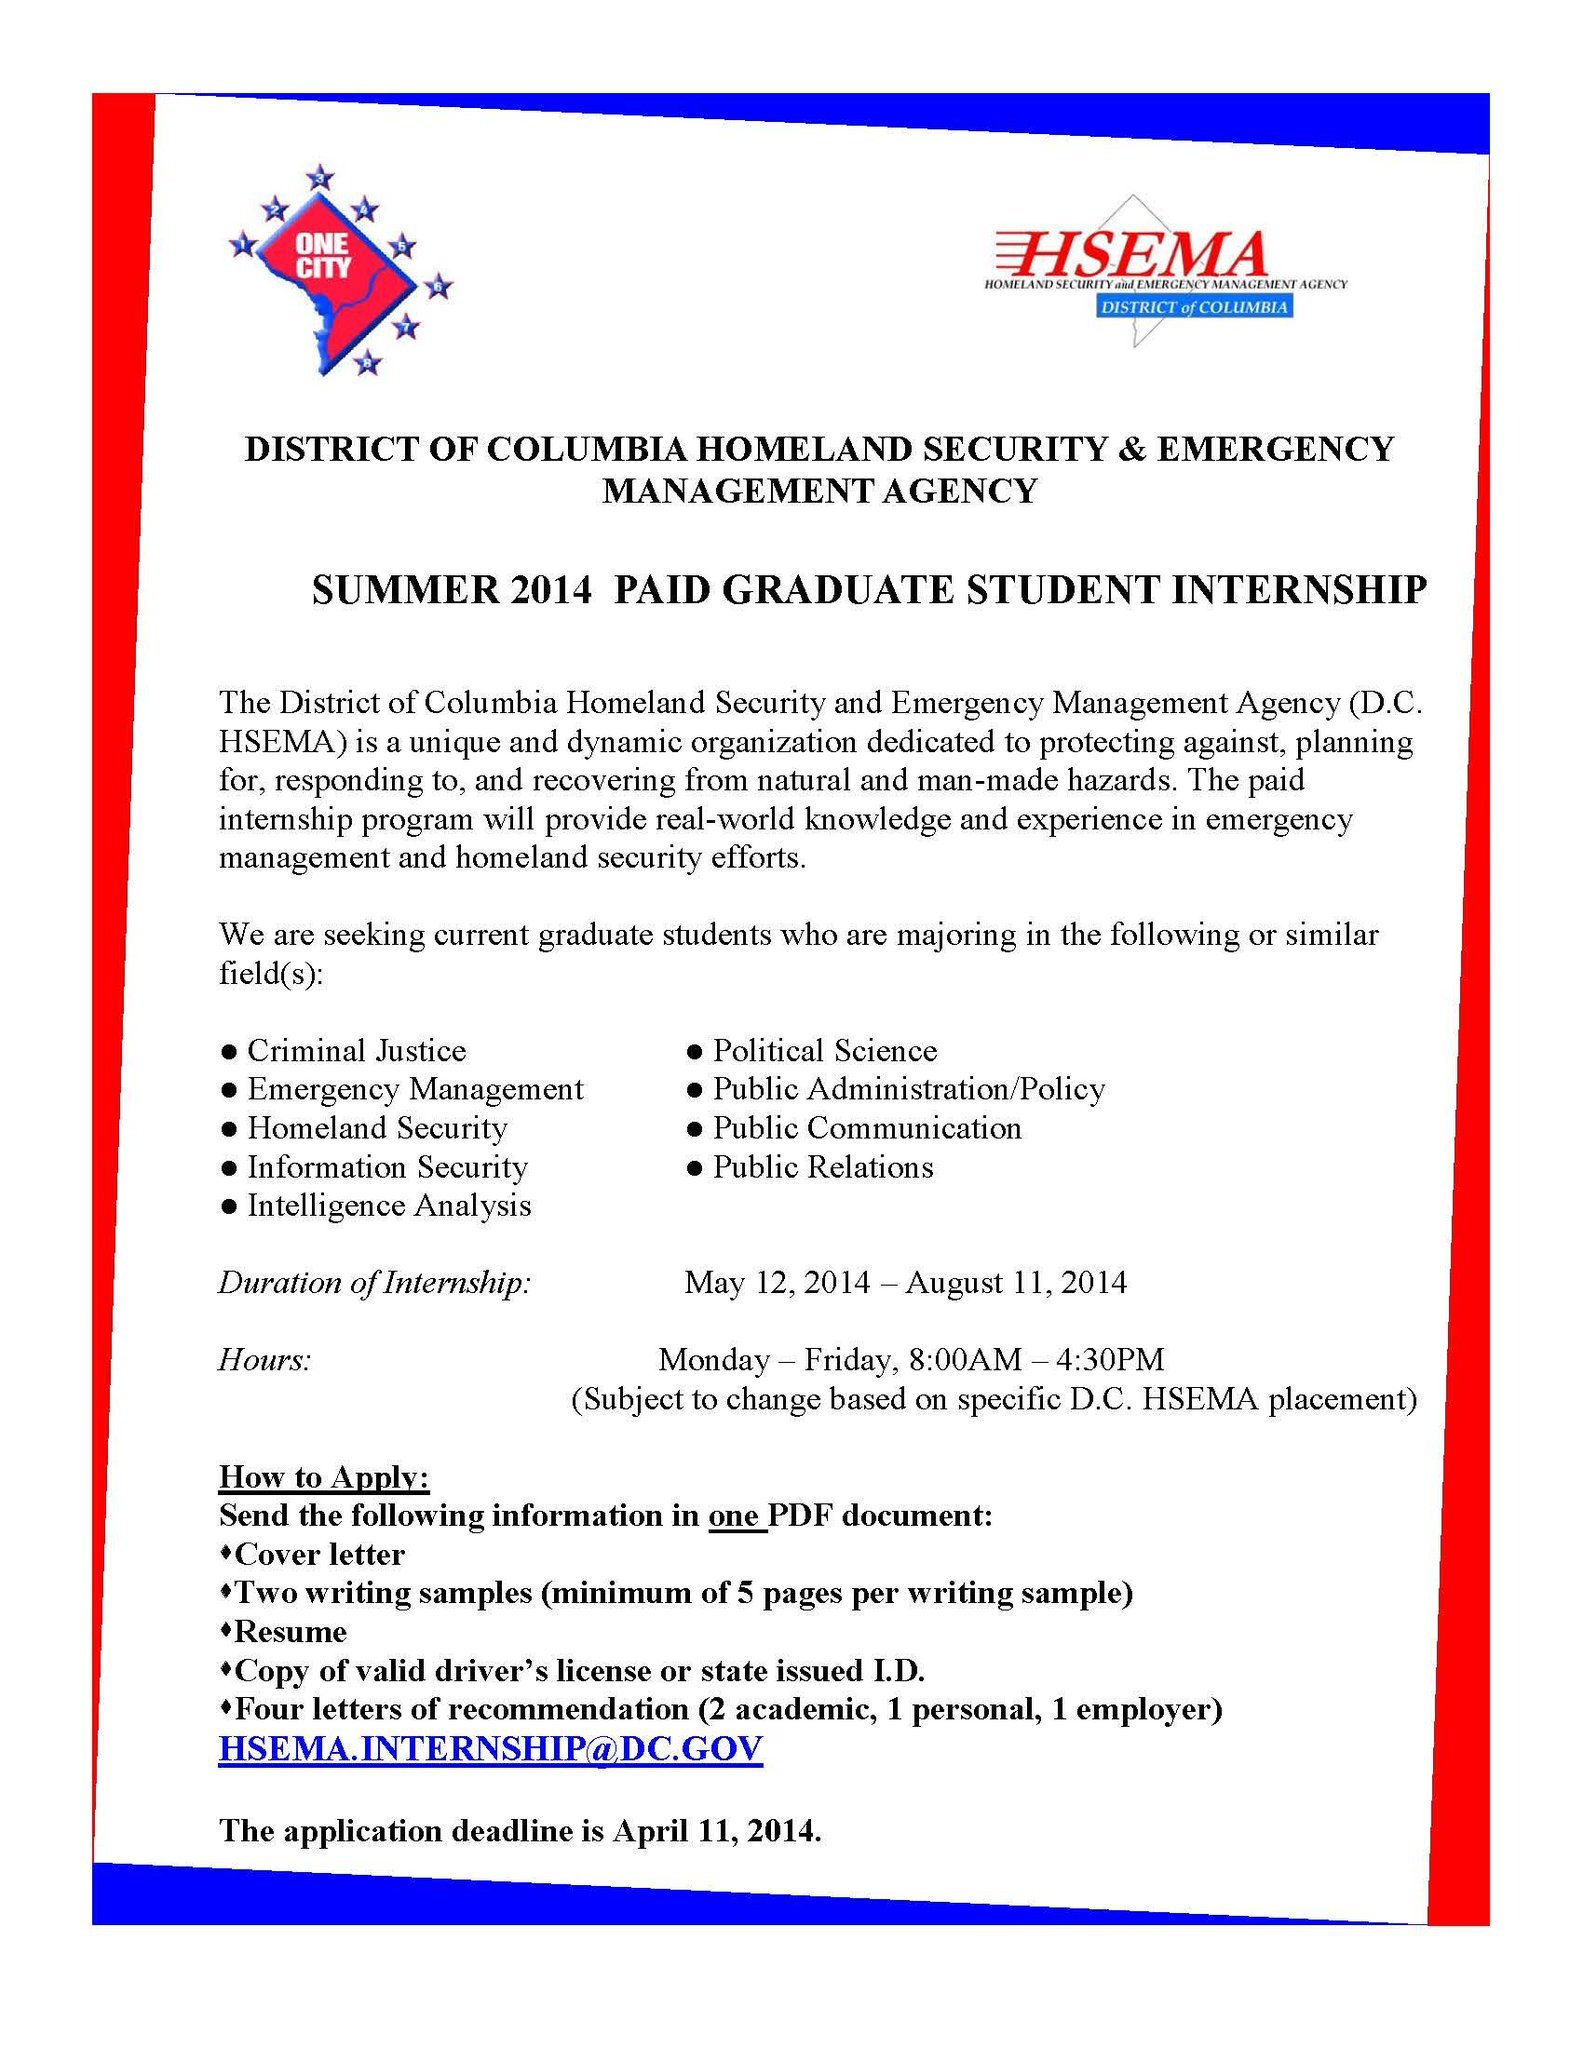 Twitter / DC_HSEMA: We're looking for graduate ...